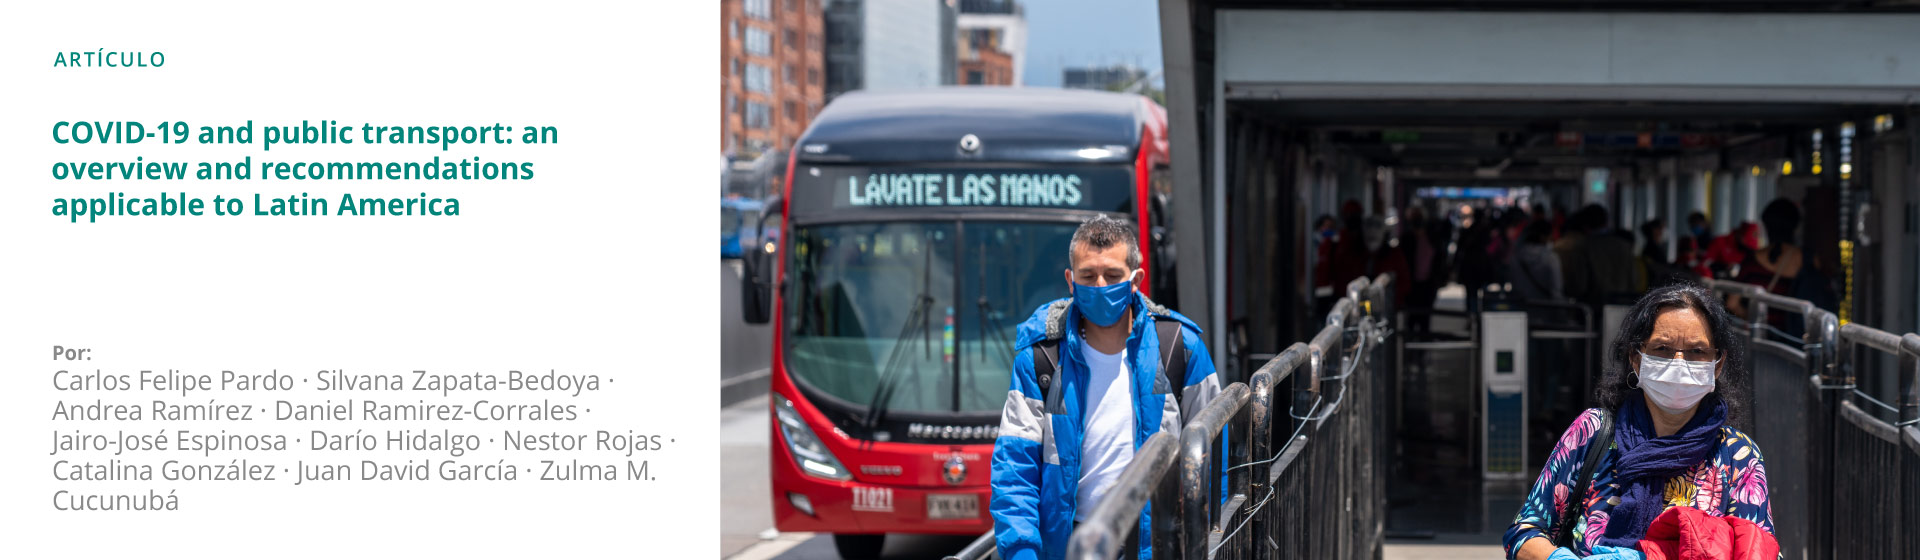 COVID-19 AND PUBLIC TRANSPORT: AN OVERVIEW AND RECOMMENDATIONS APPLICABLE TO LATIN AMERICA